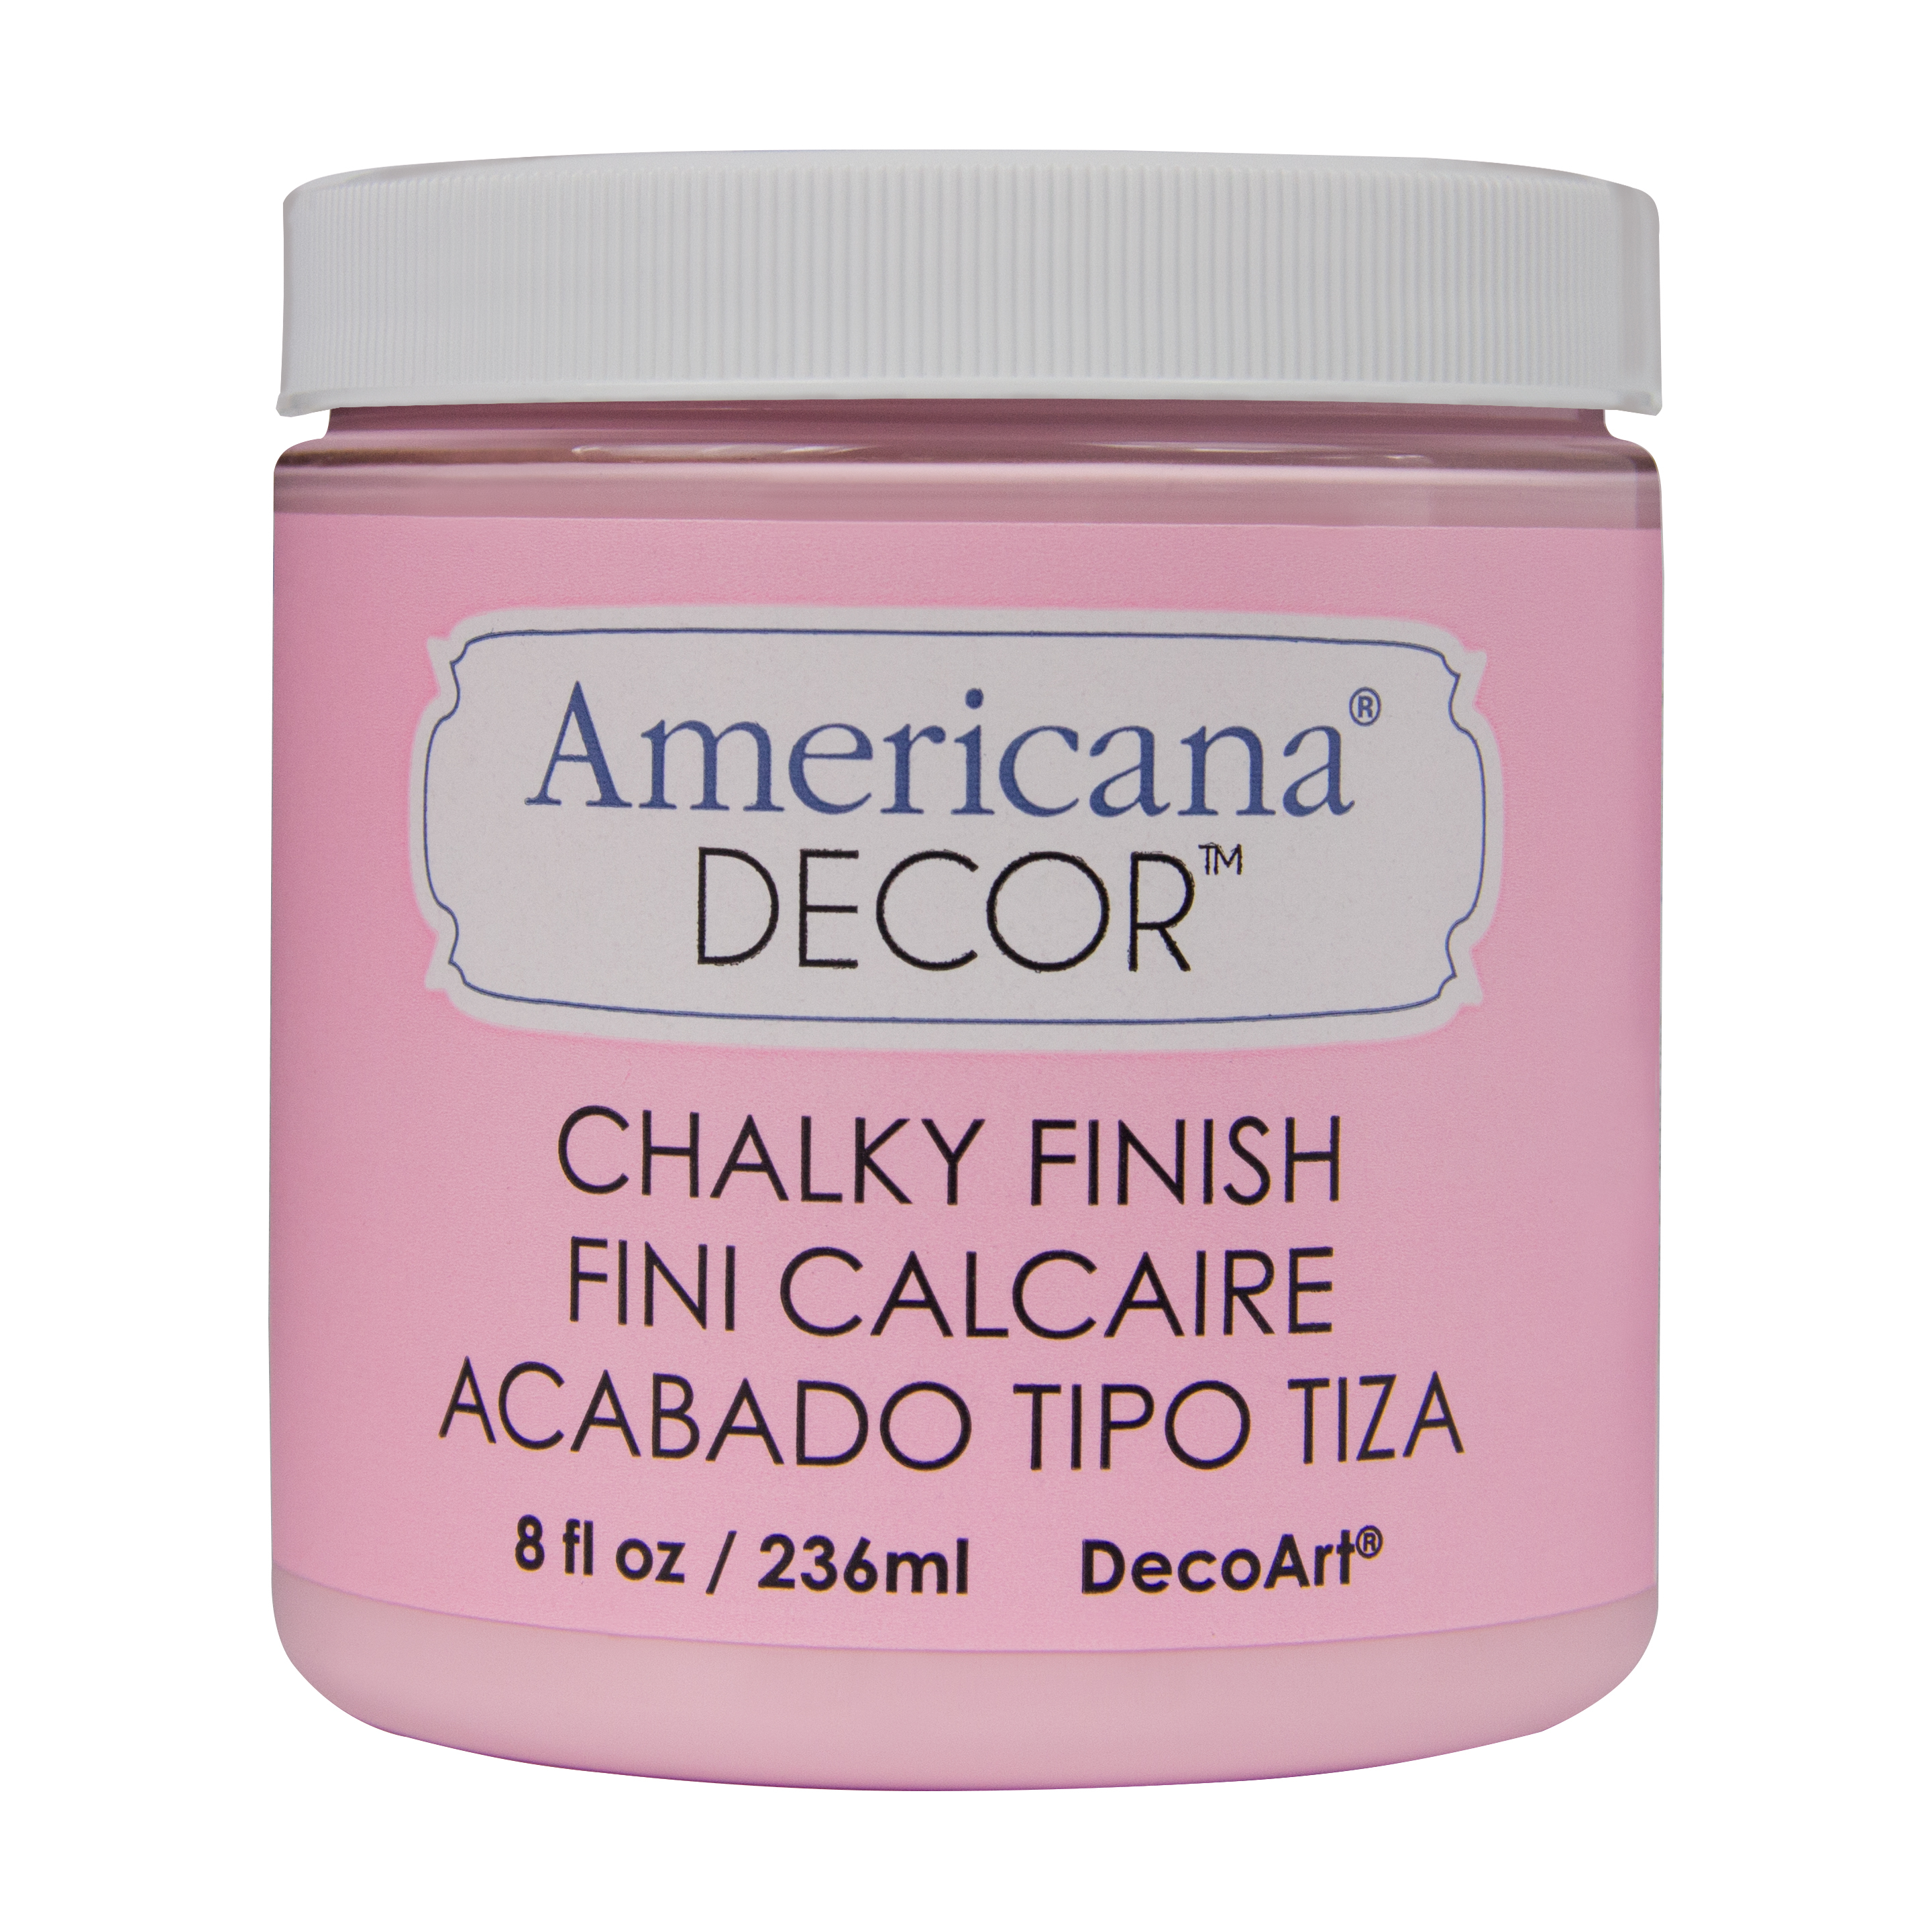 INNOCENCE CHALKY FINISH 236ml AMERICANA DECOR